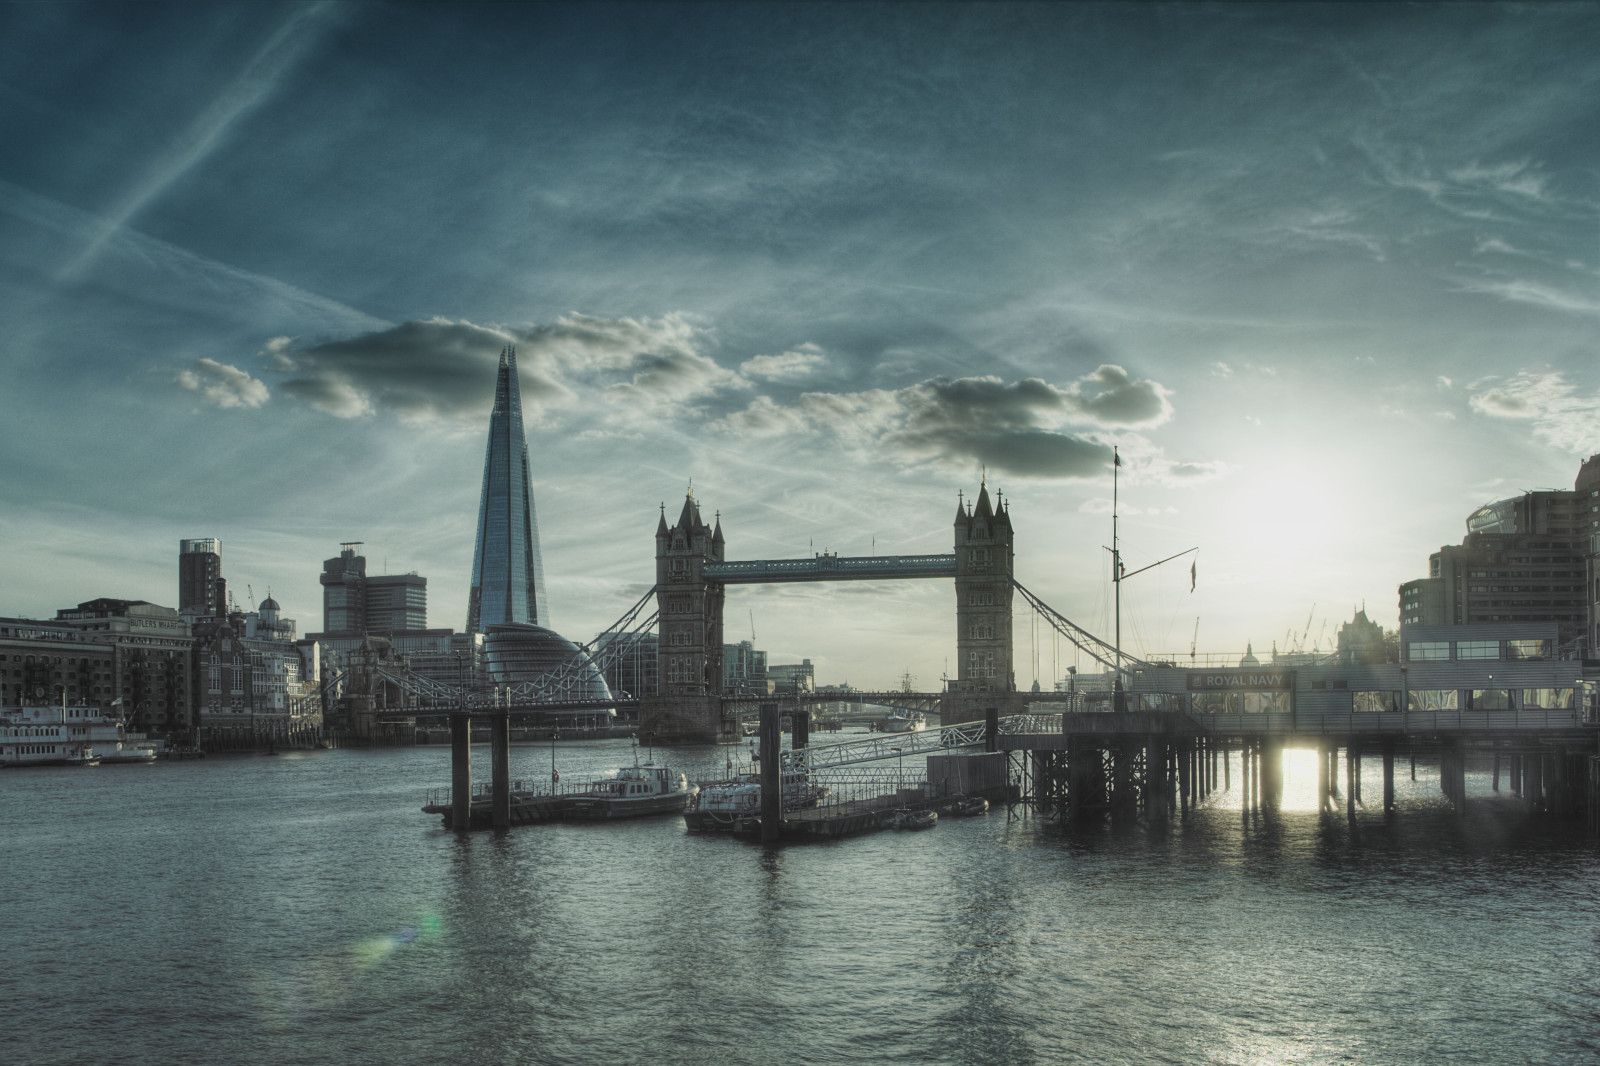 _MG_2514_5_6_7_8_tonemapped